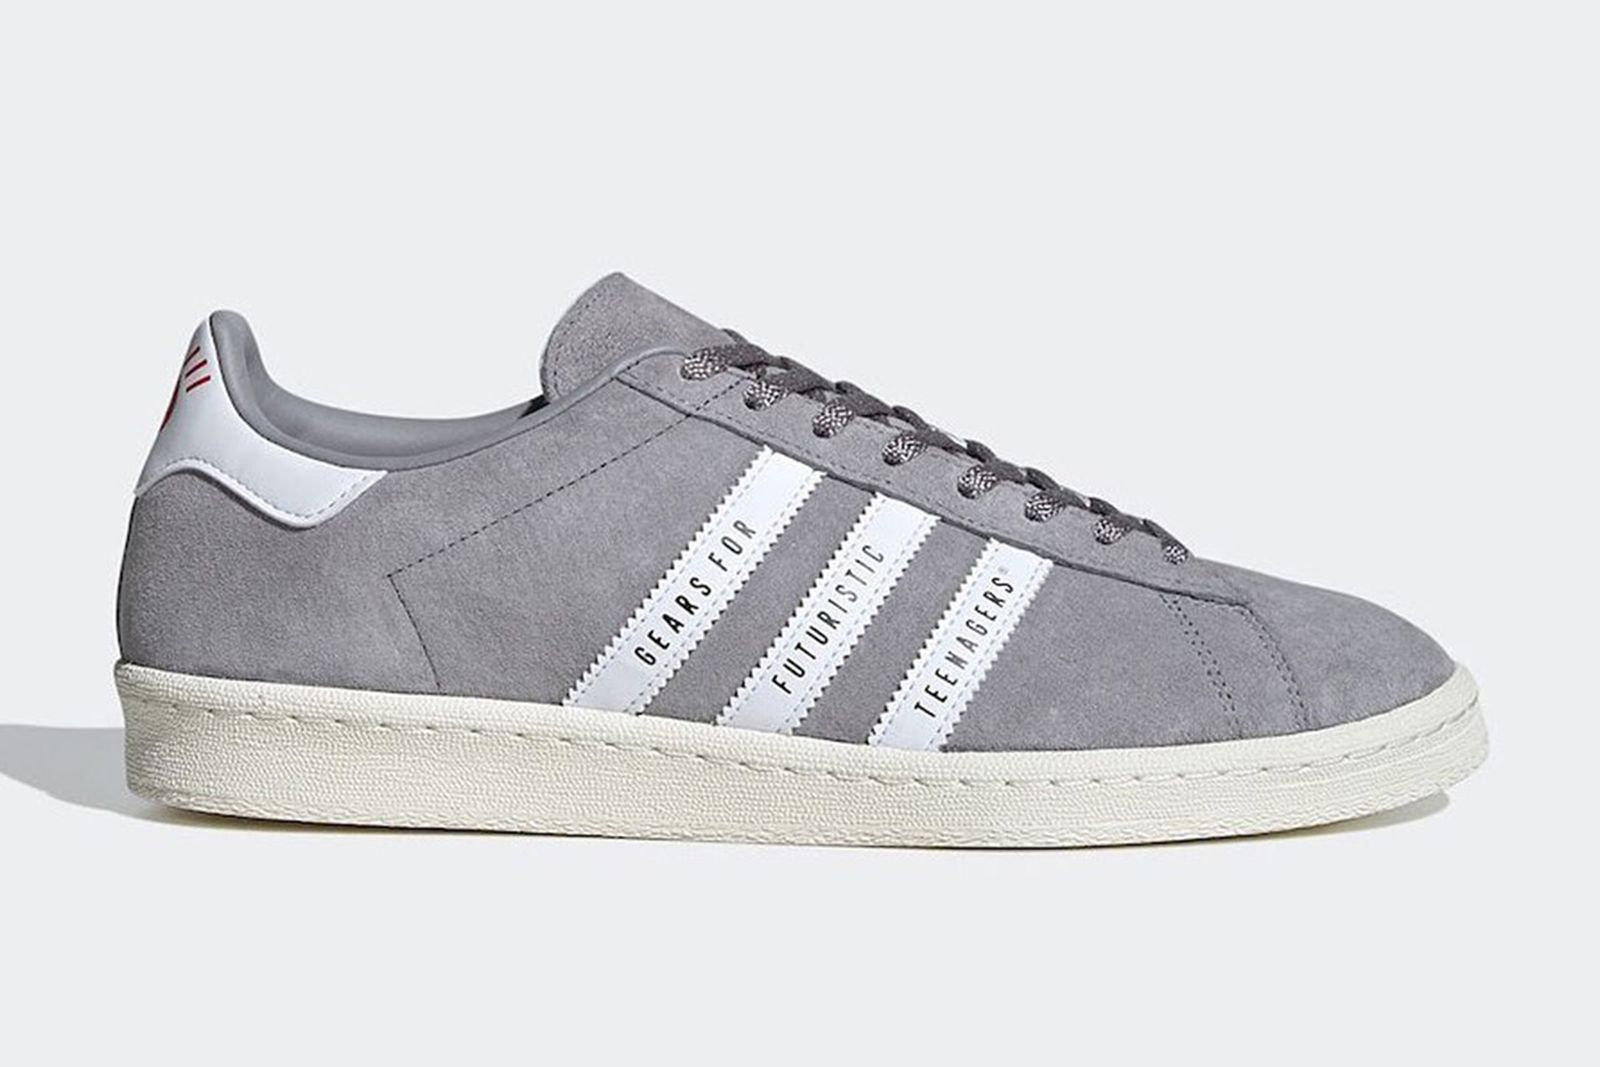 Human Made x adidas Campus in gery suede